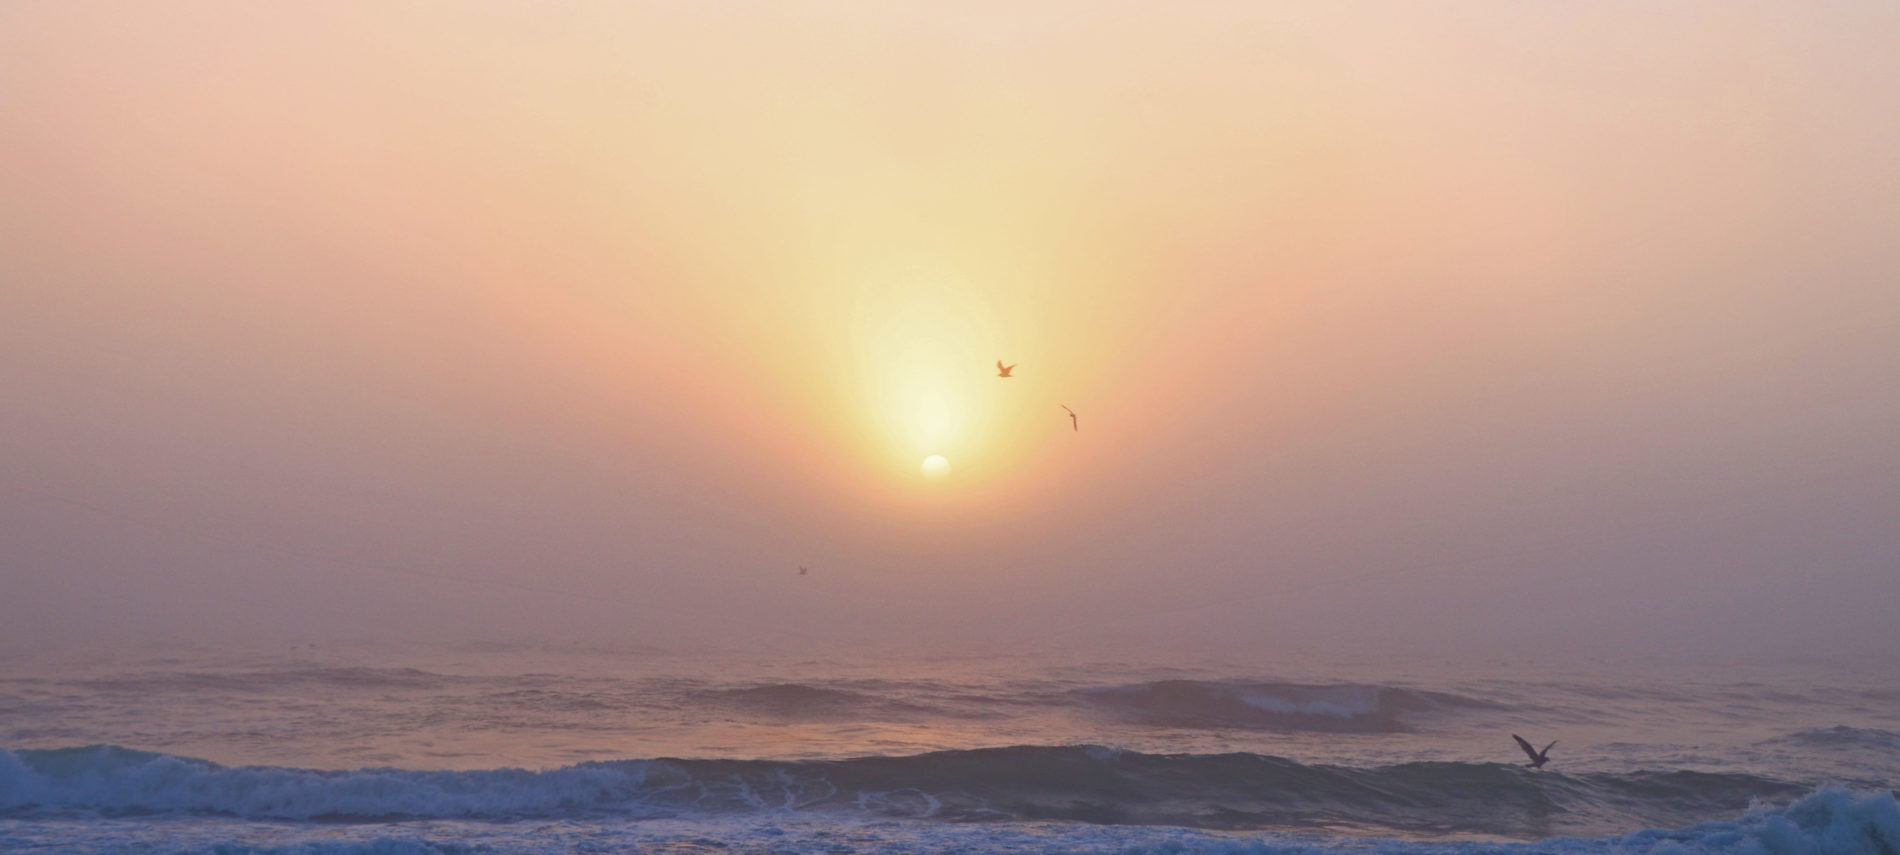 Sun rising above the ocean with a pale pink sky and seagulls flying above the waves and in front of the clouds